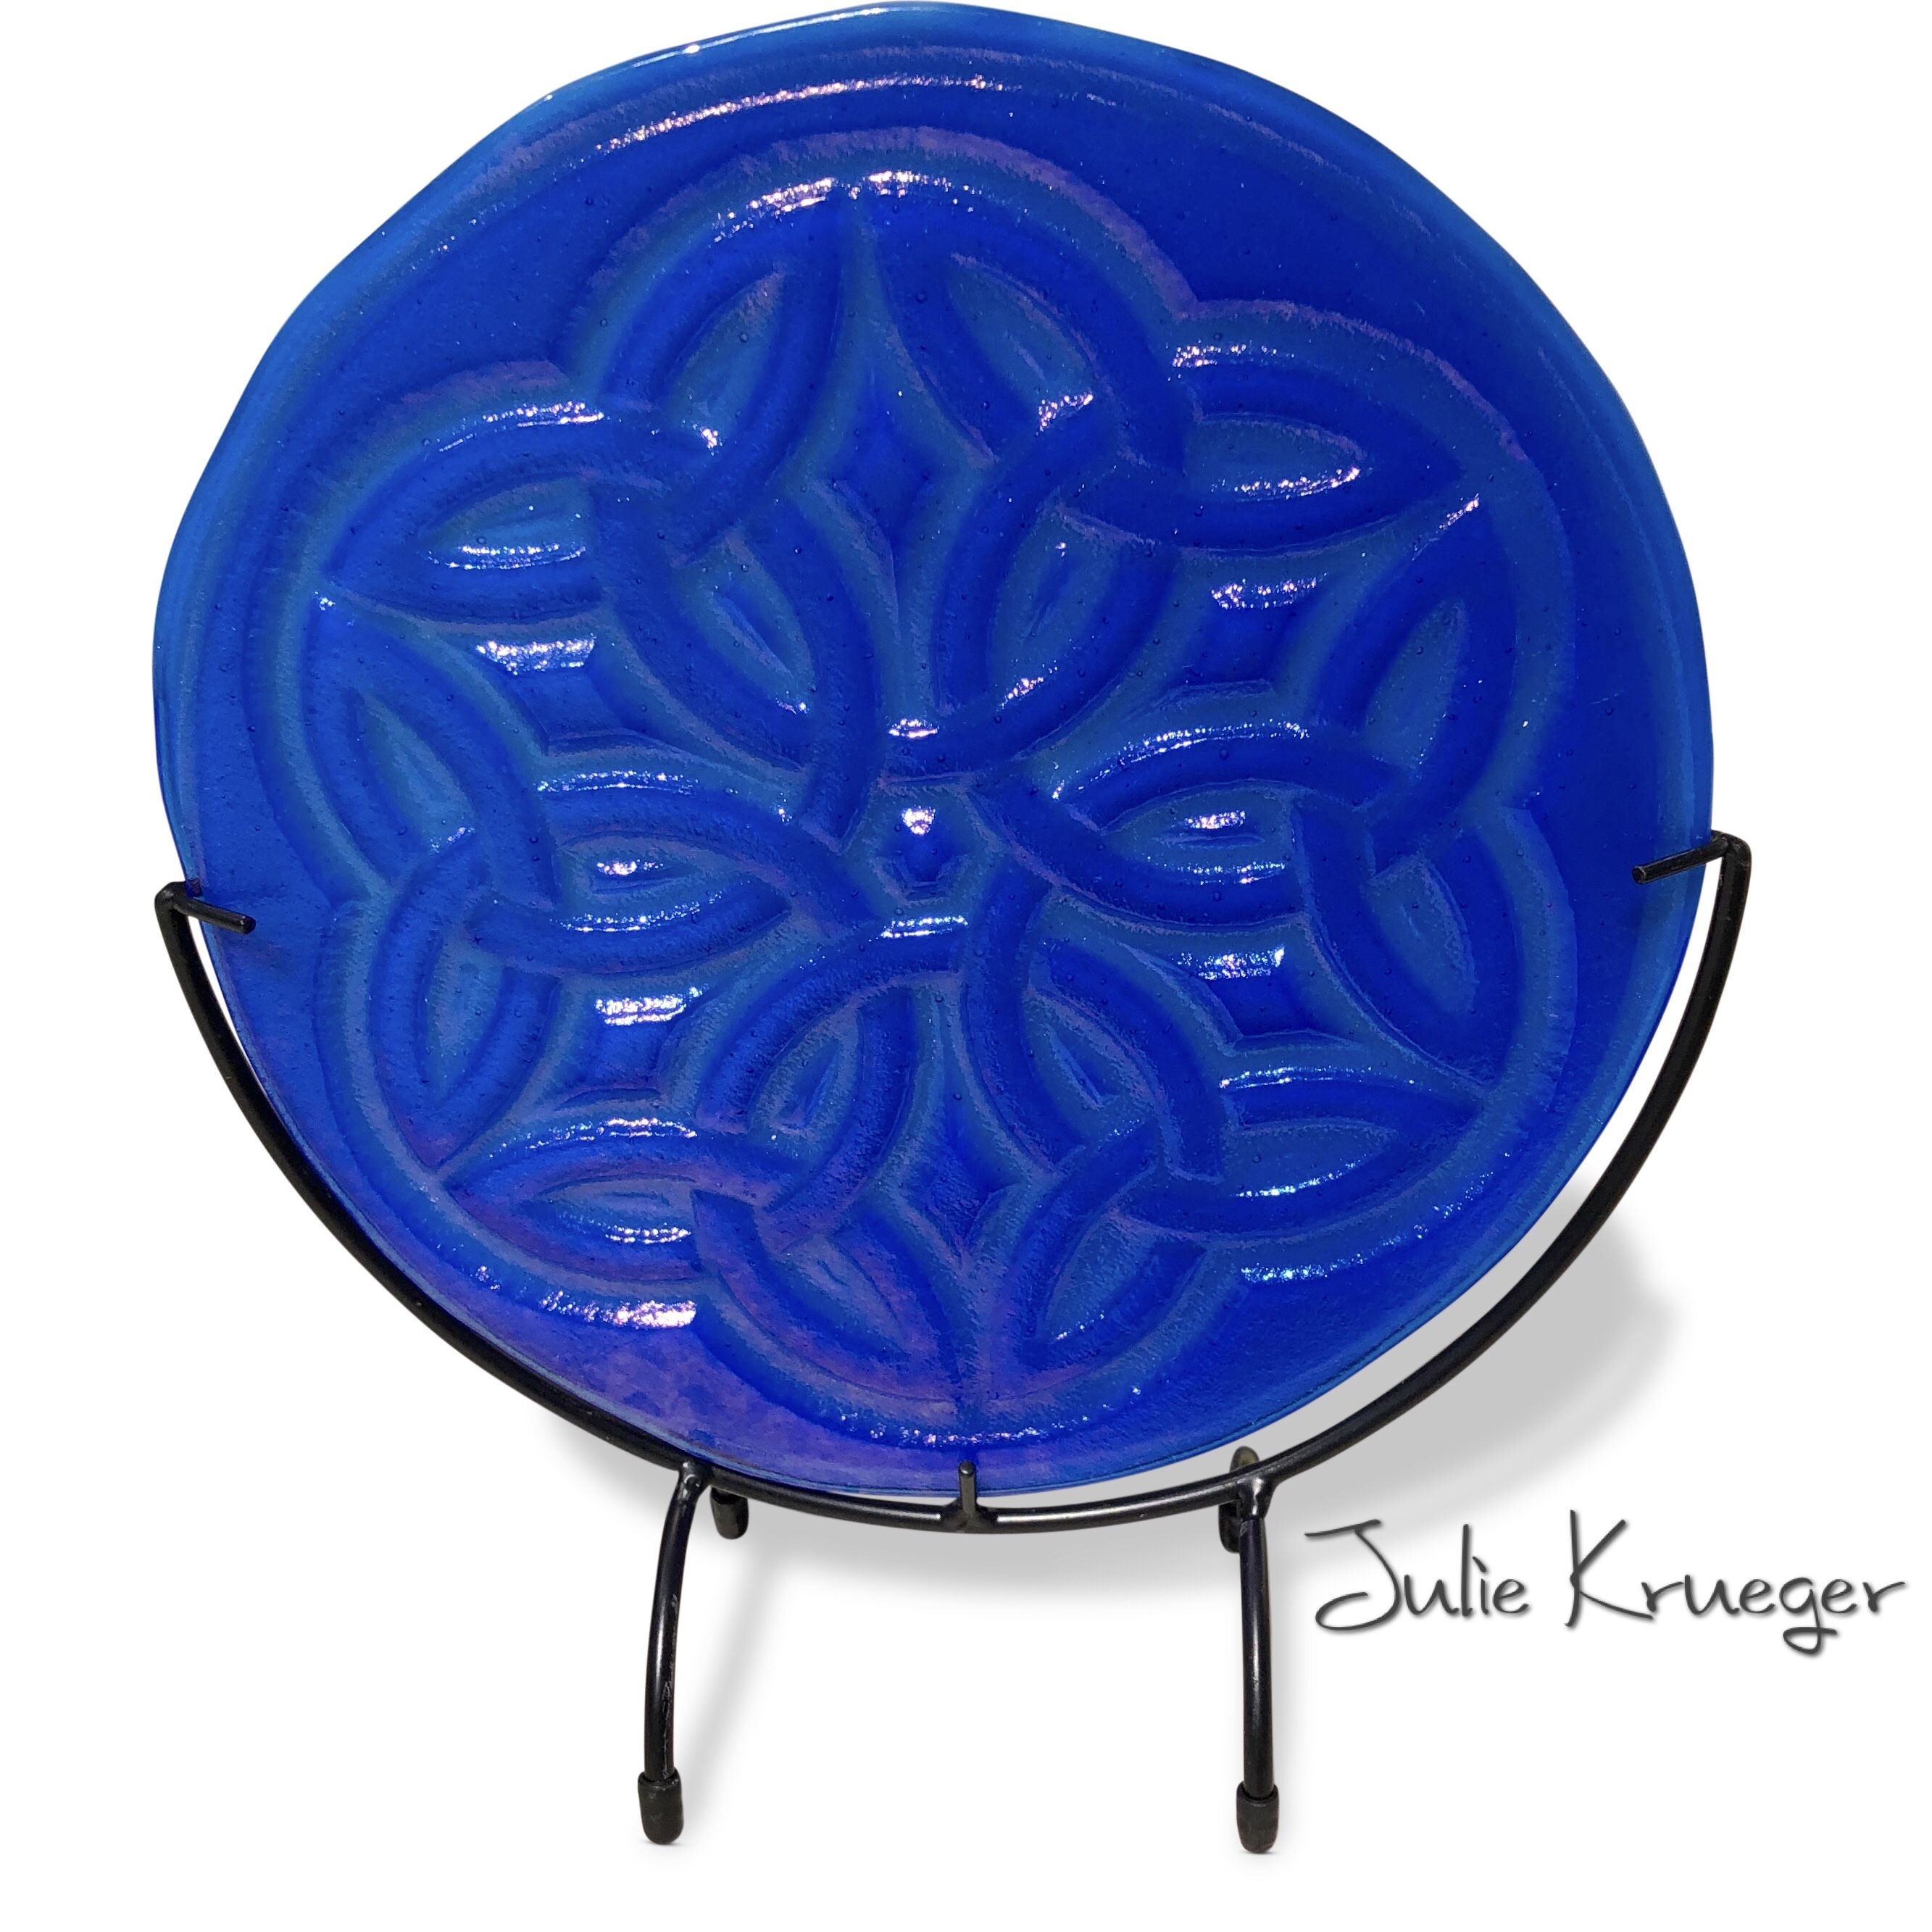 Celtic knot in blue | Saucer chairs, Decorative plates, Celtic